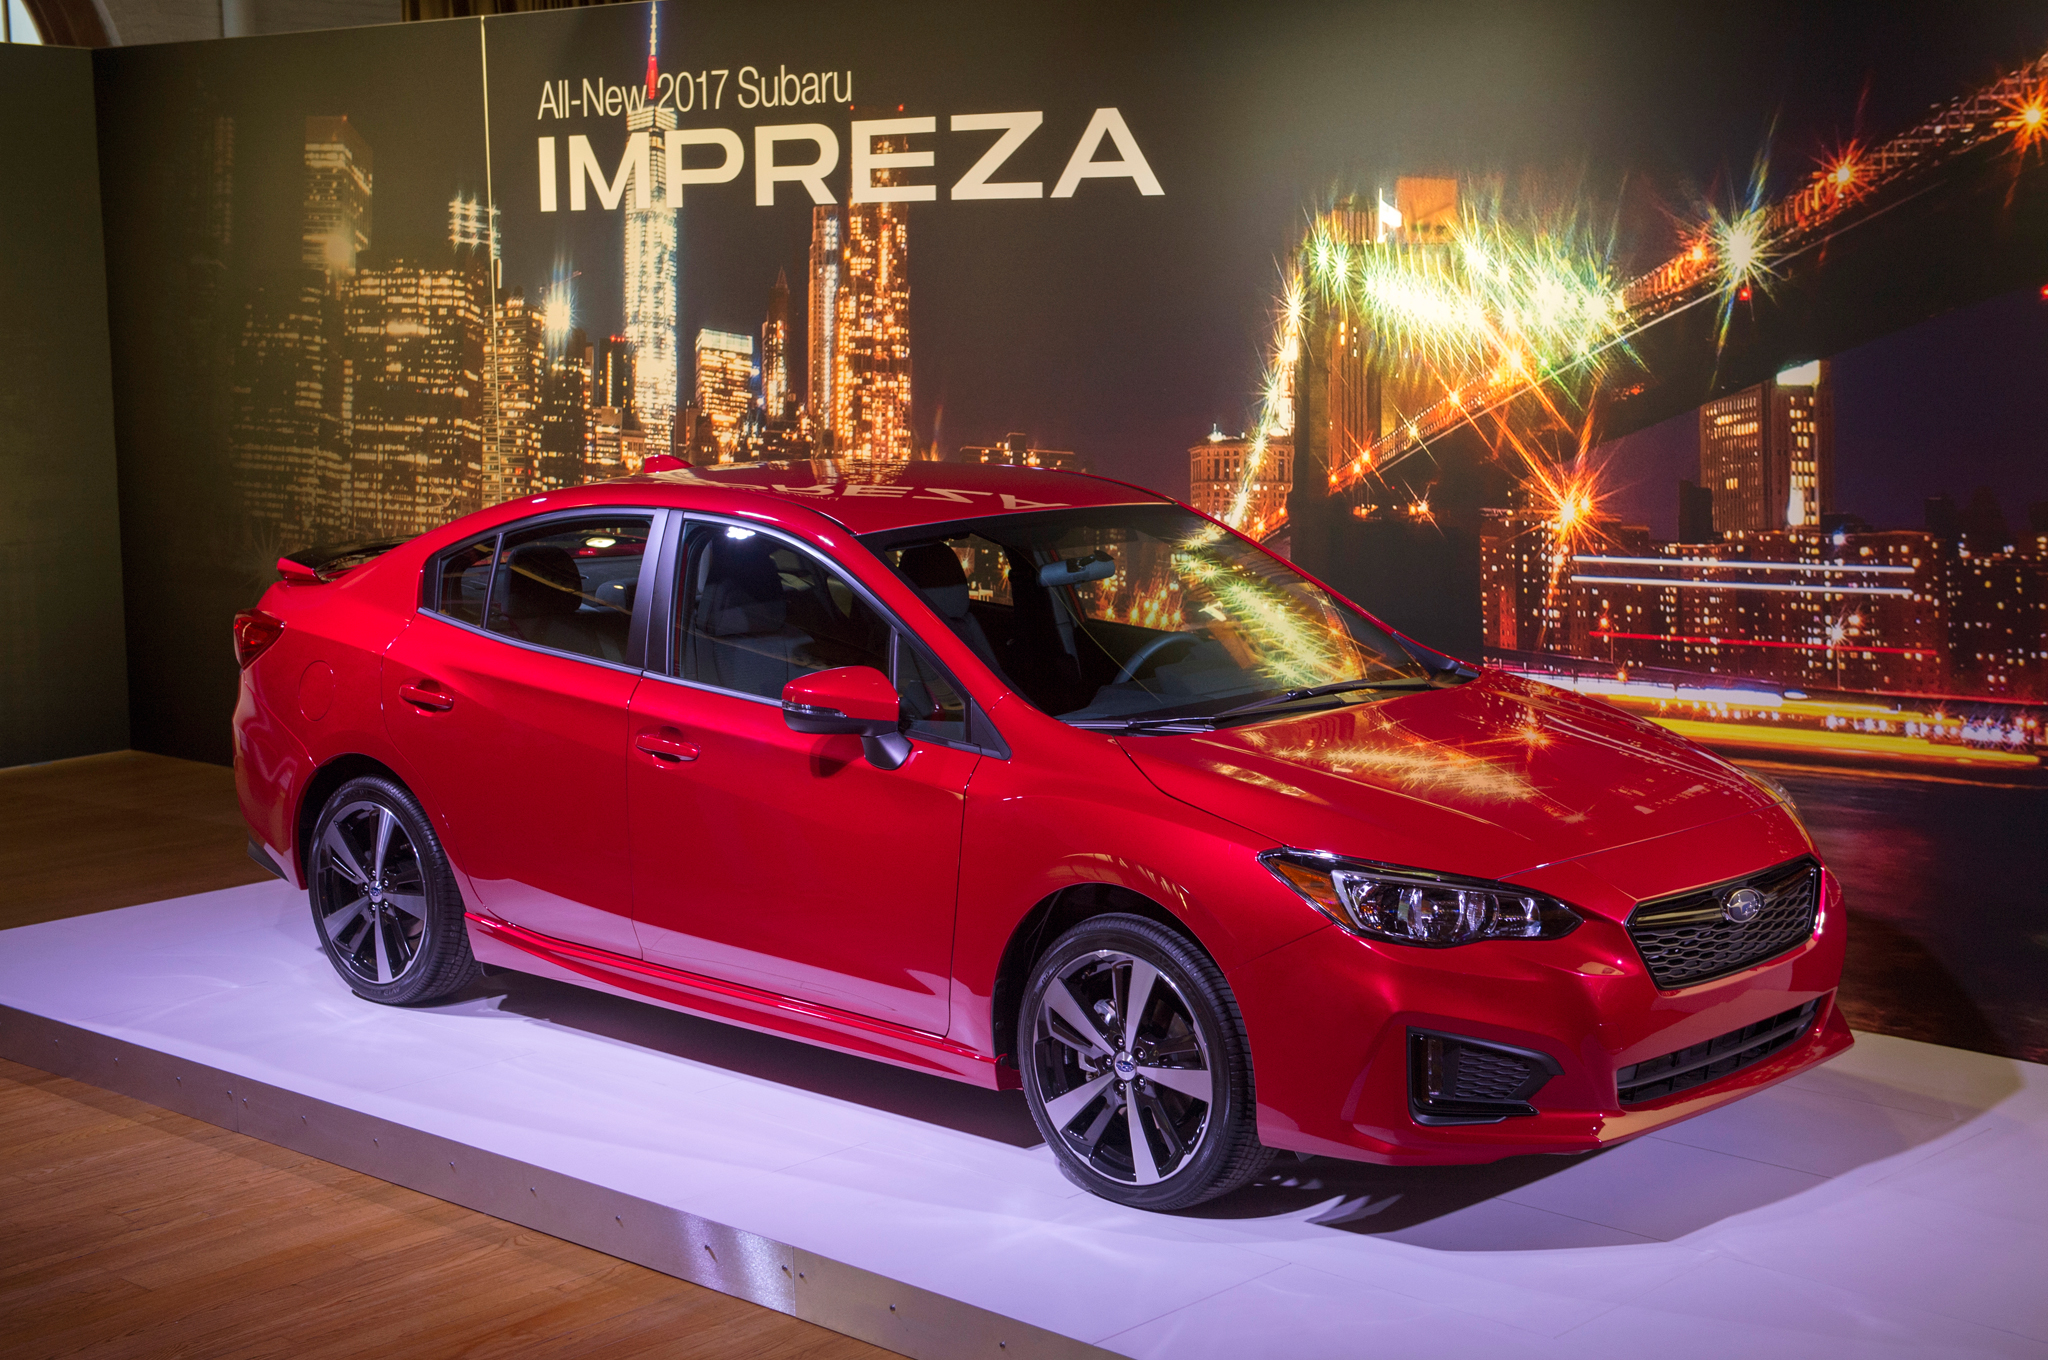 Subaru Impreza – new car under $25,000